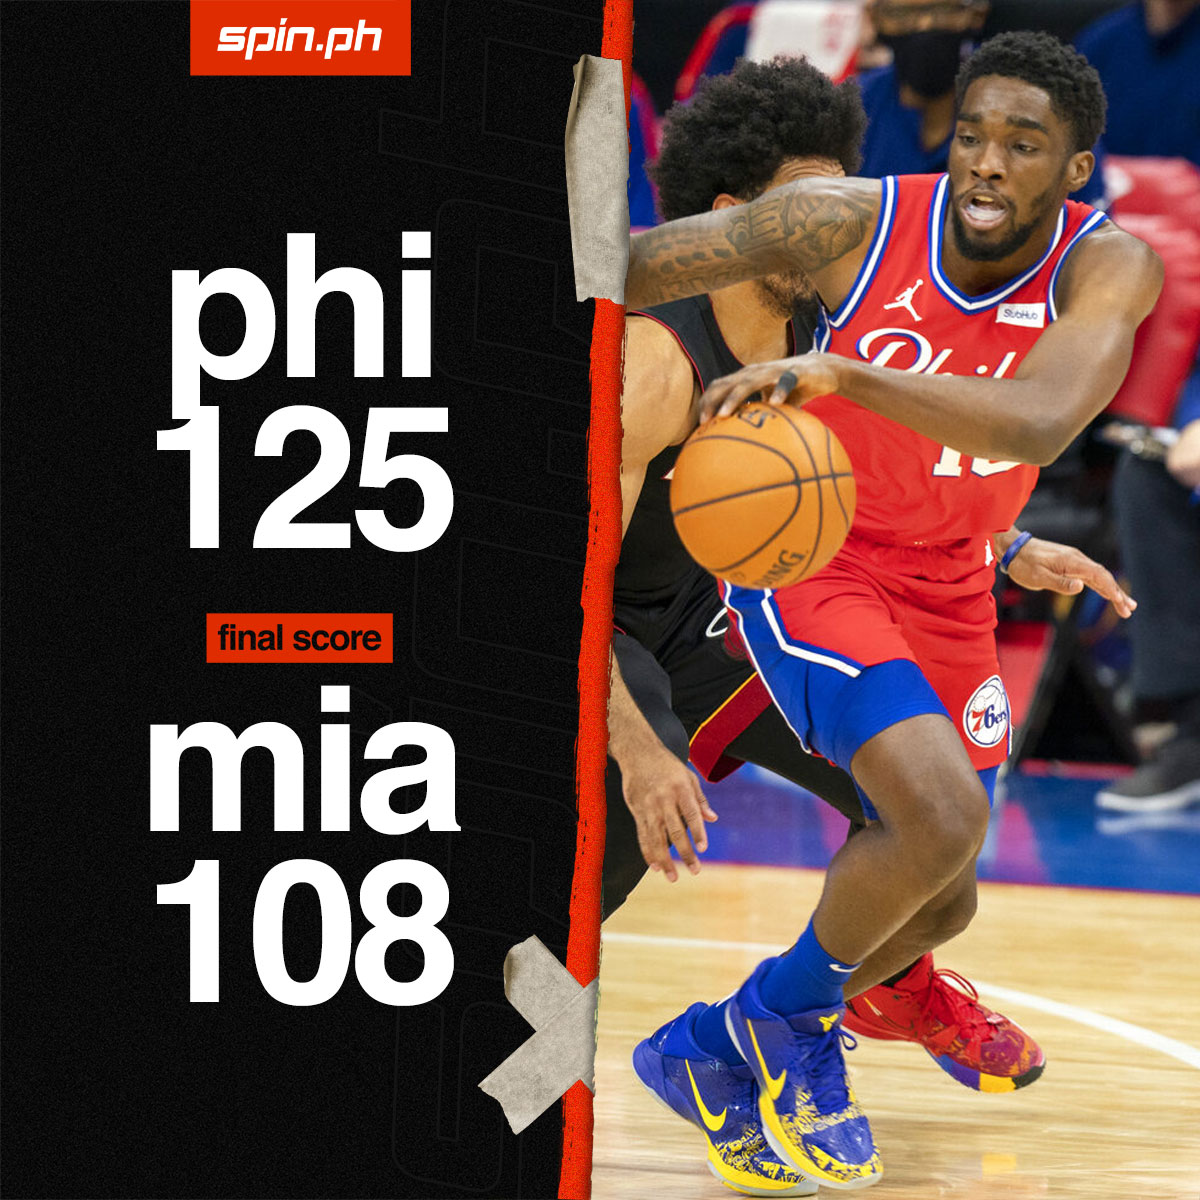 Shake Milton drops 31 off the bench as 76ers make it back-to-back wins vs Heat  #ReadMore >> https://t.co/RlWc556Xpp https://t.co/A8zVazT0Ee